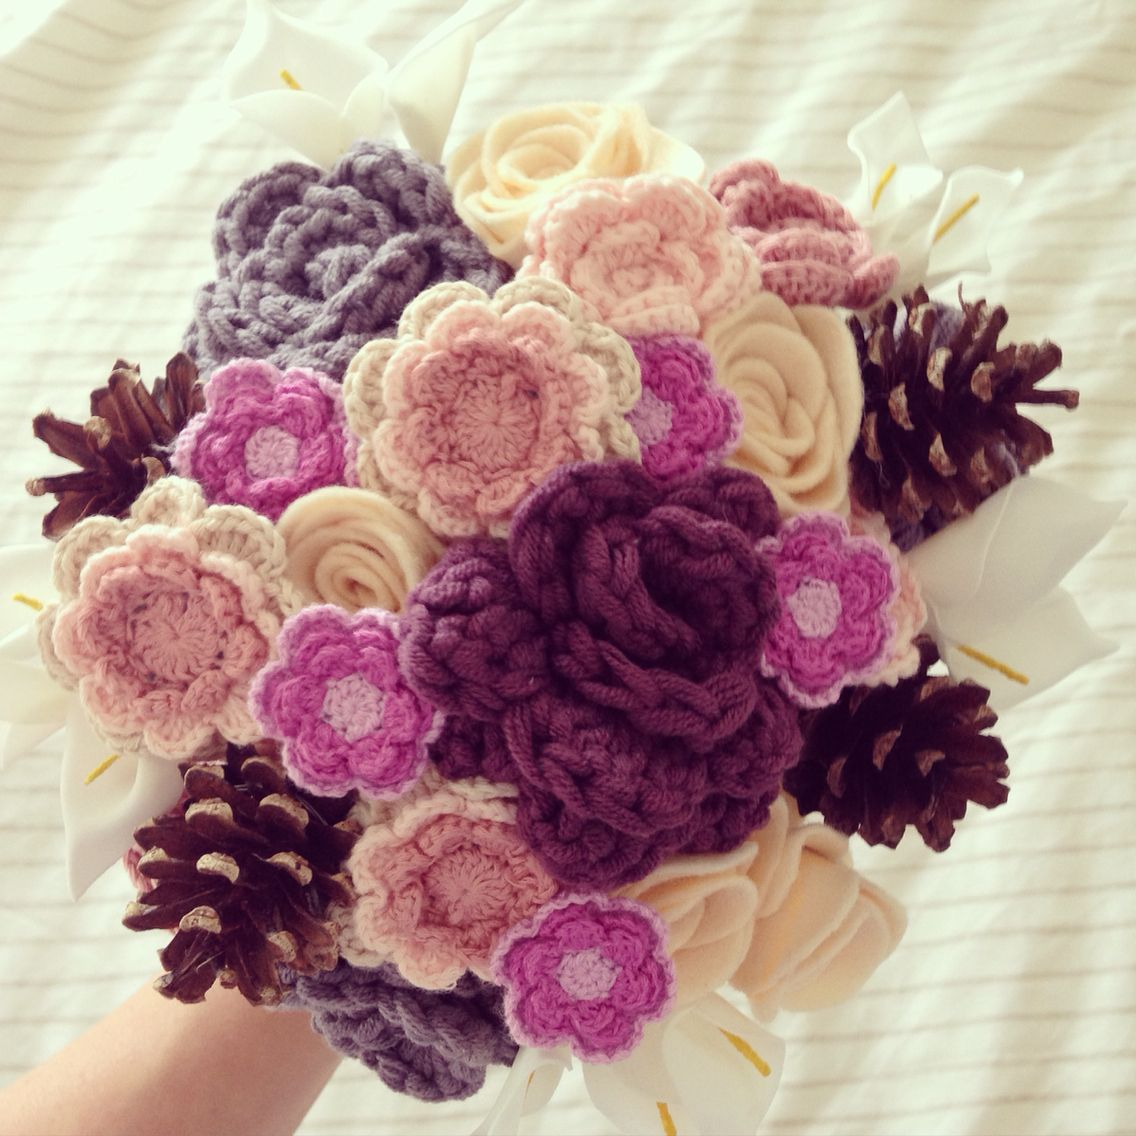 Crochet flower bouquet woodland wedding bride httpfacebook crochet flower bouquet woodland wedding bride httpfacebookflorachet izmirmasajfo